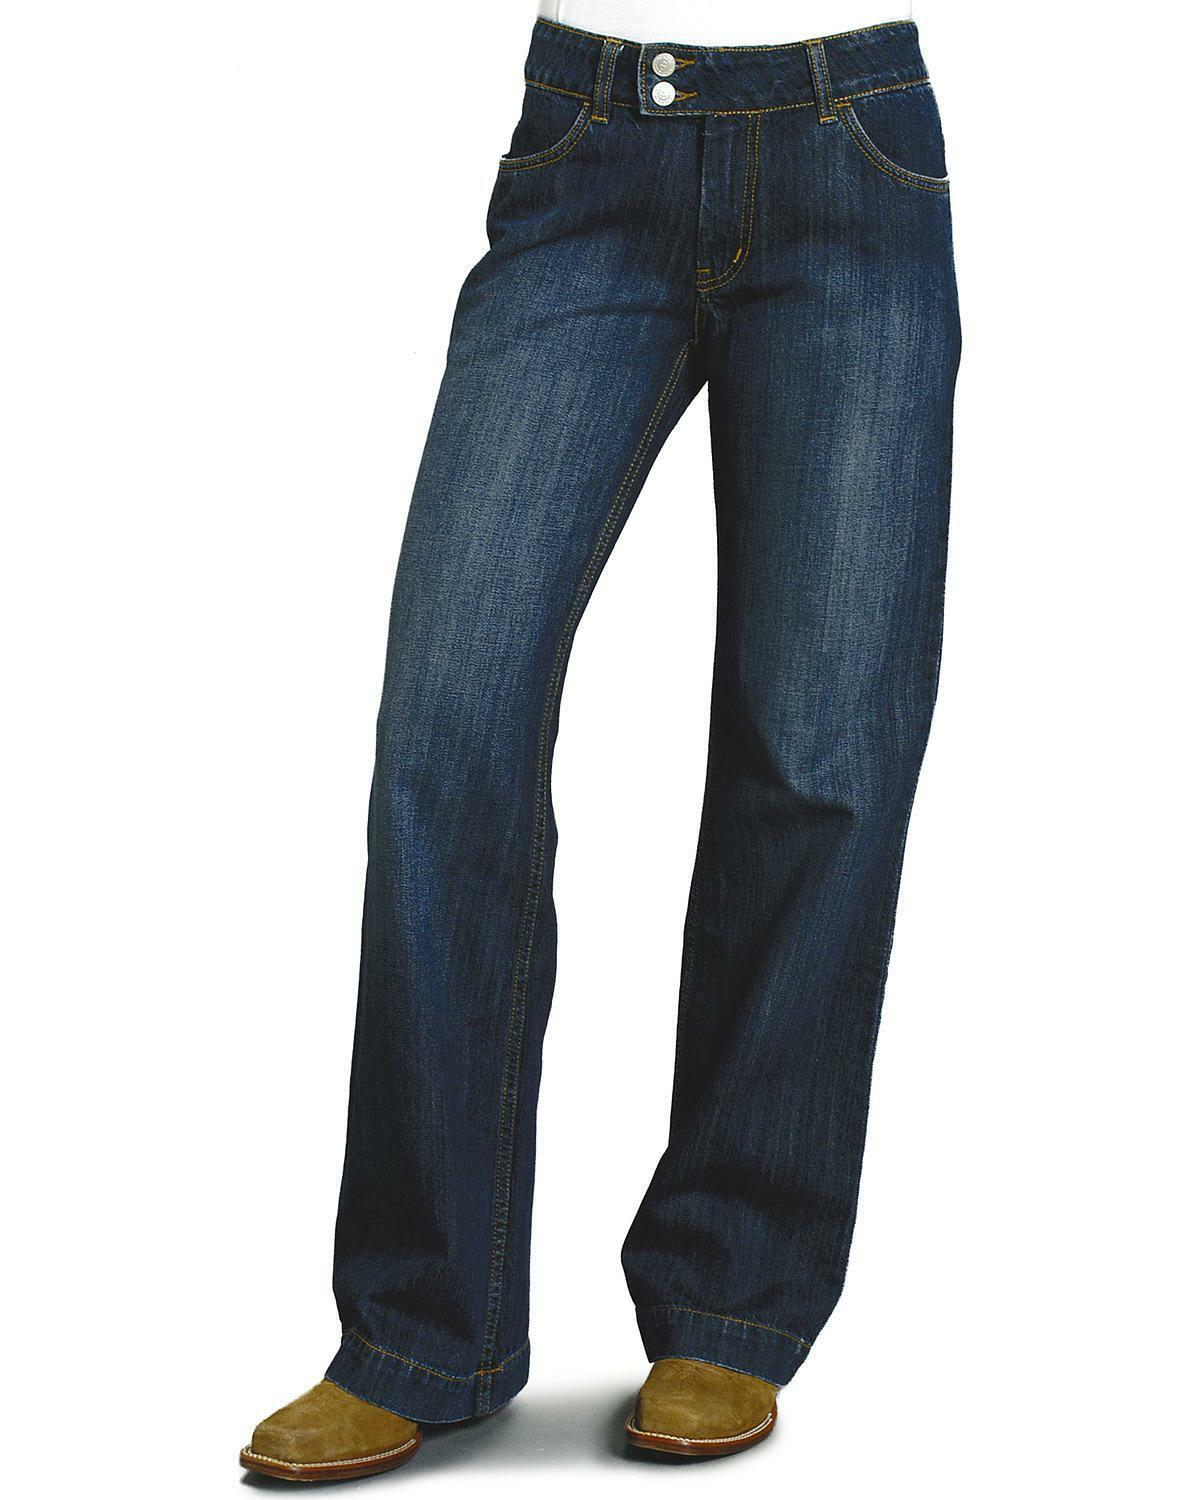 Stetson Women's 214 Fit City Trouser Jeans  - 11-054-0202-0130 BU